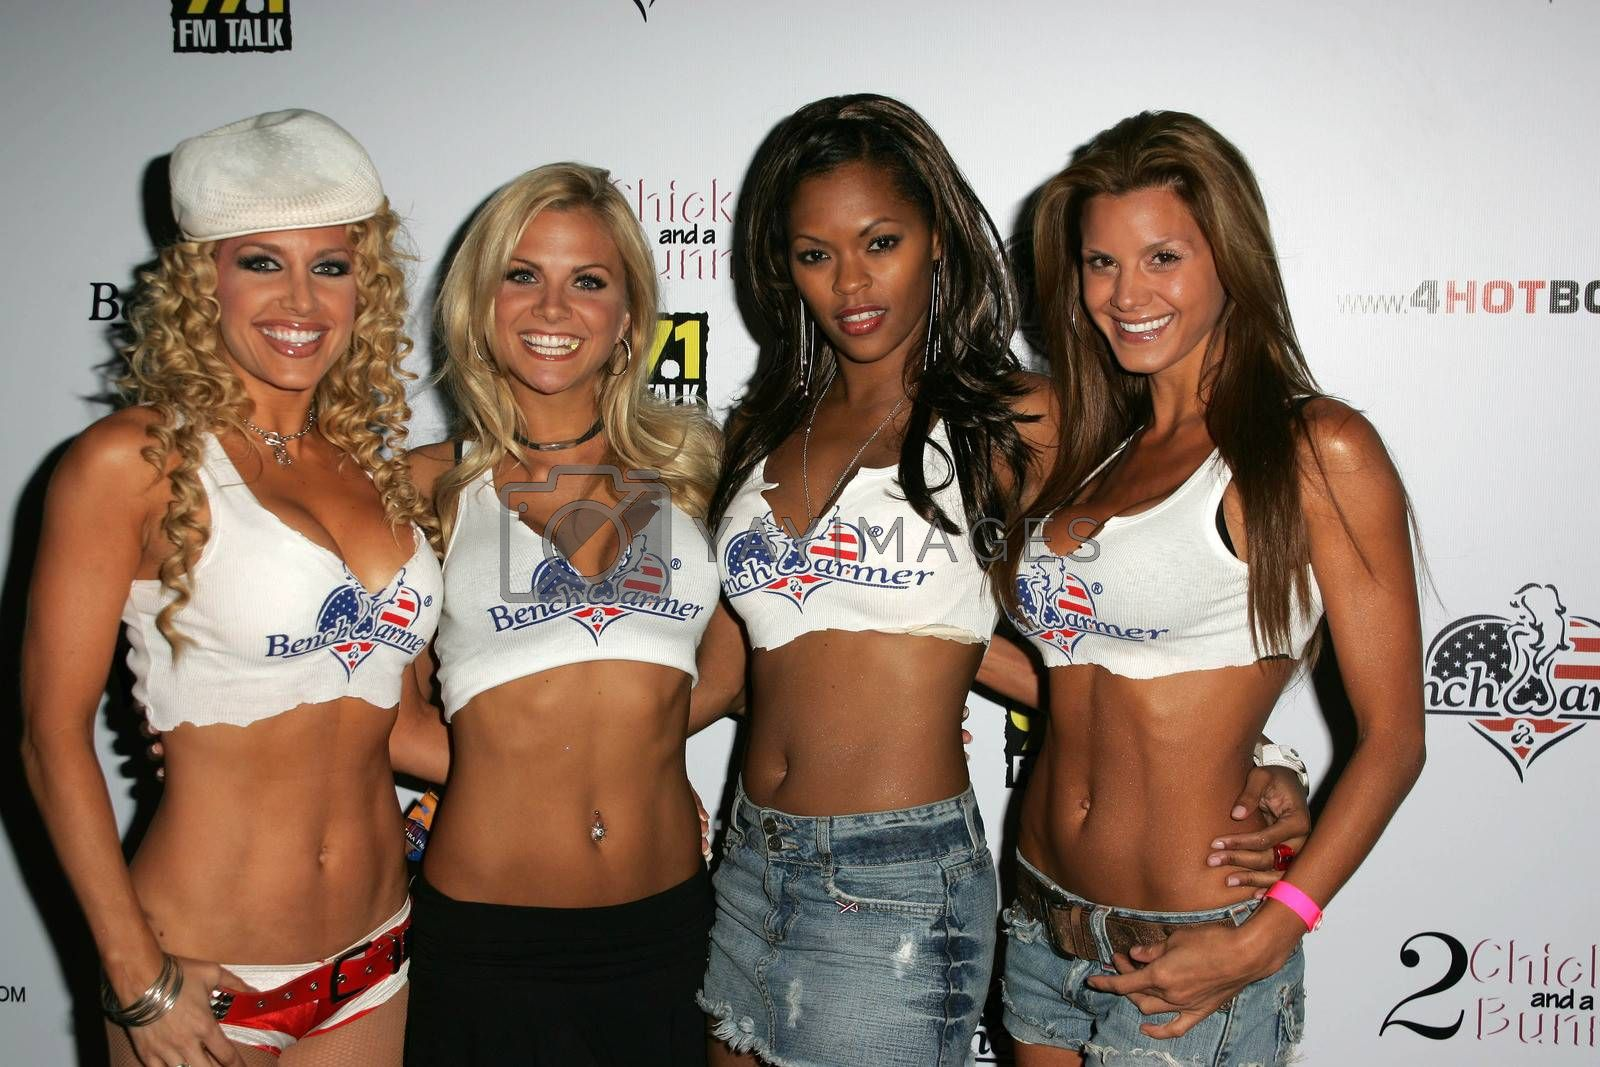 Lisa Ligon, Mary Riley, Tira Probost and Heather Schirra at Bench Warmer's 2nd Annual 4th of July Celebration, The Day After, Hollywood, CA 06-29-05